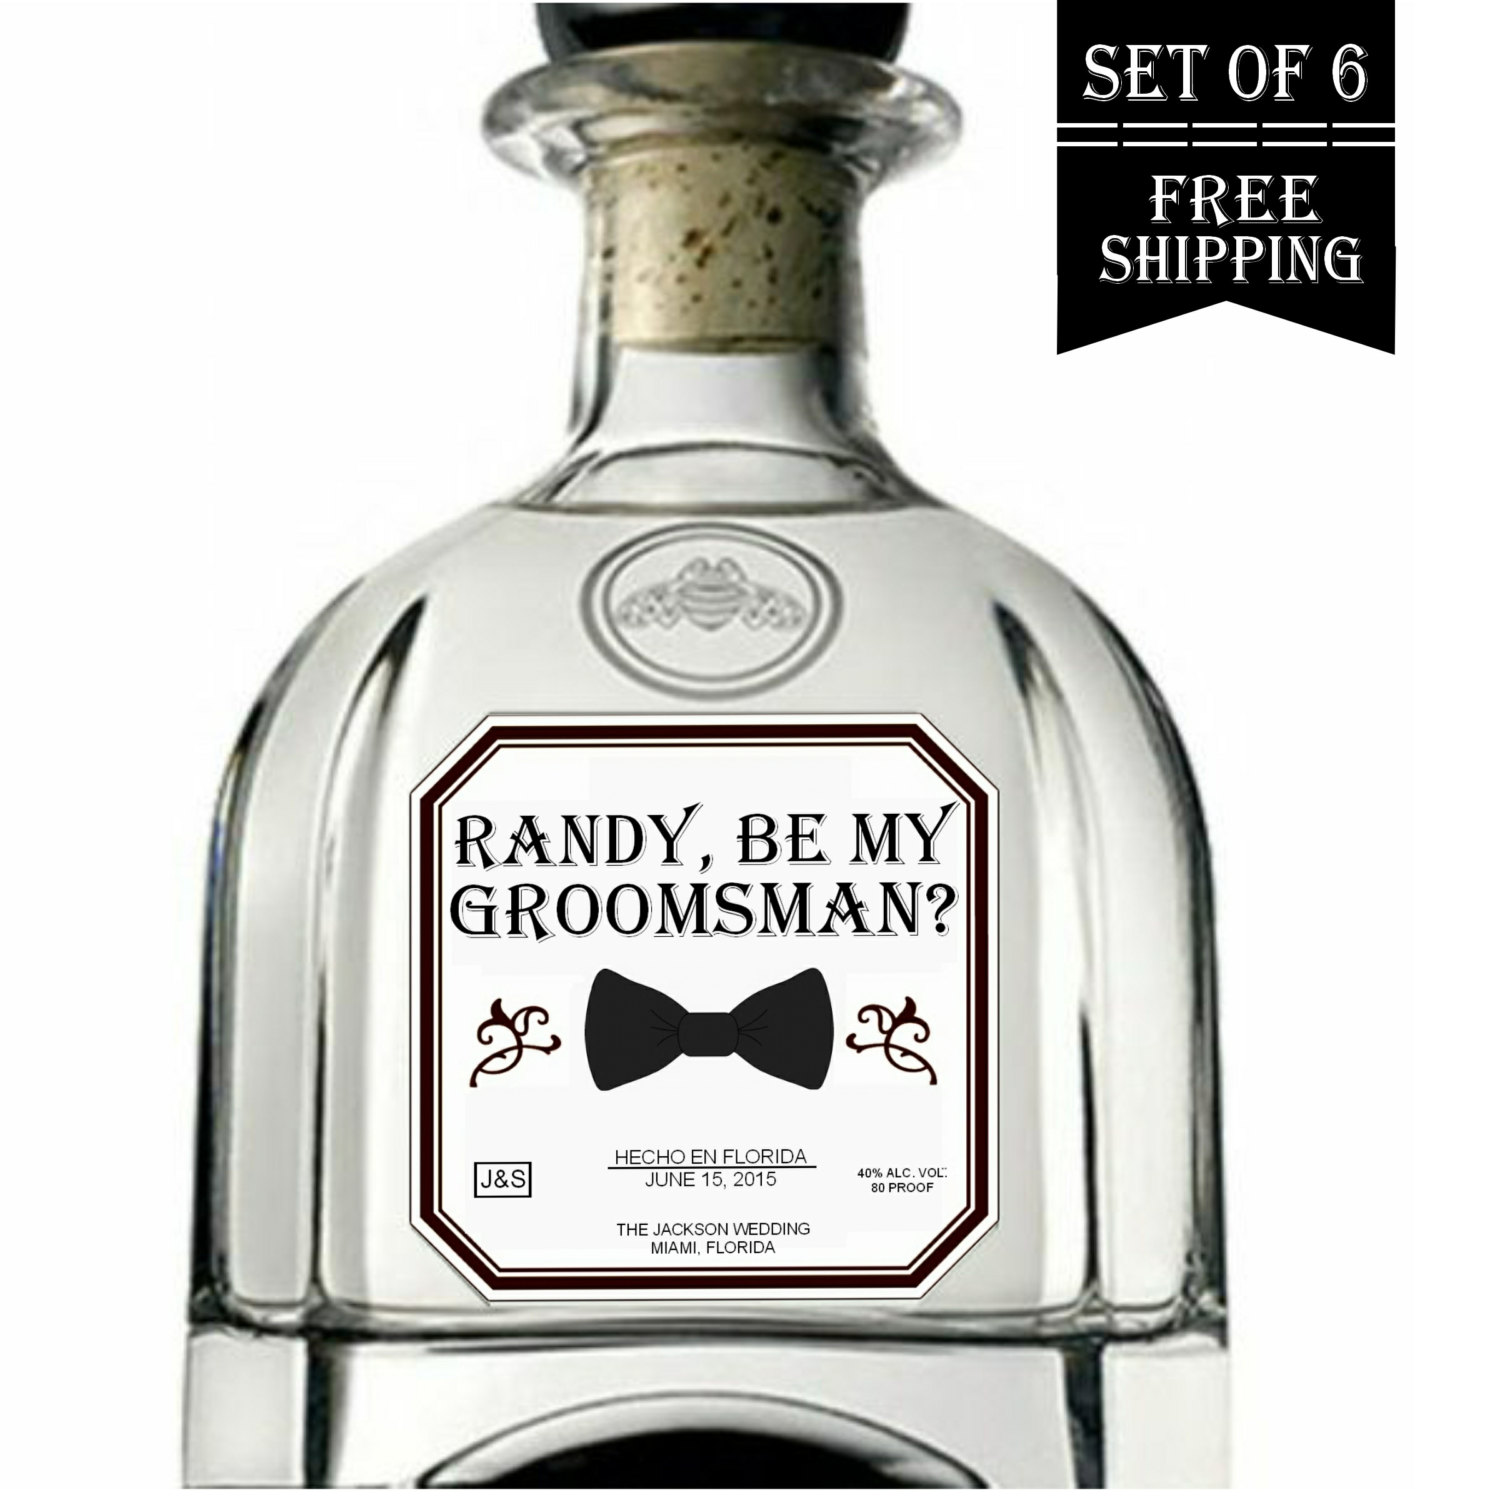 be my groomsman patron label